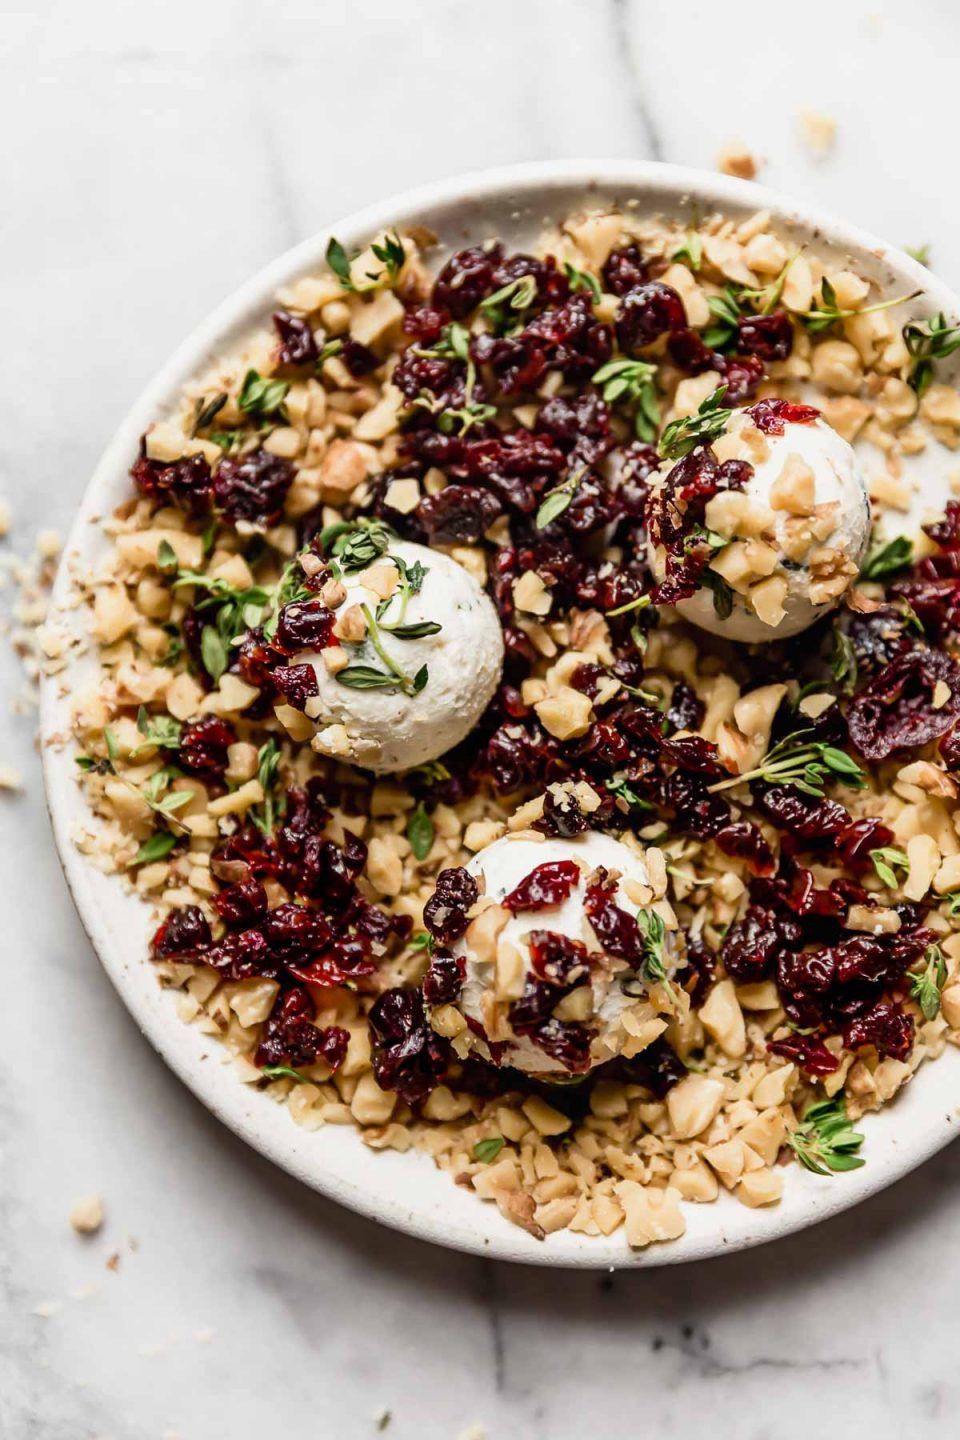 Rolling goat cheese balls in coating of chopped nuts & dried Montmorency tart cherries on a small white plate.